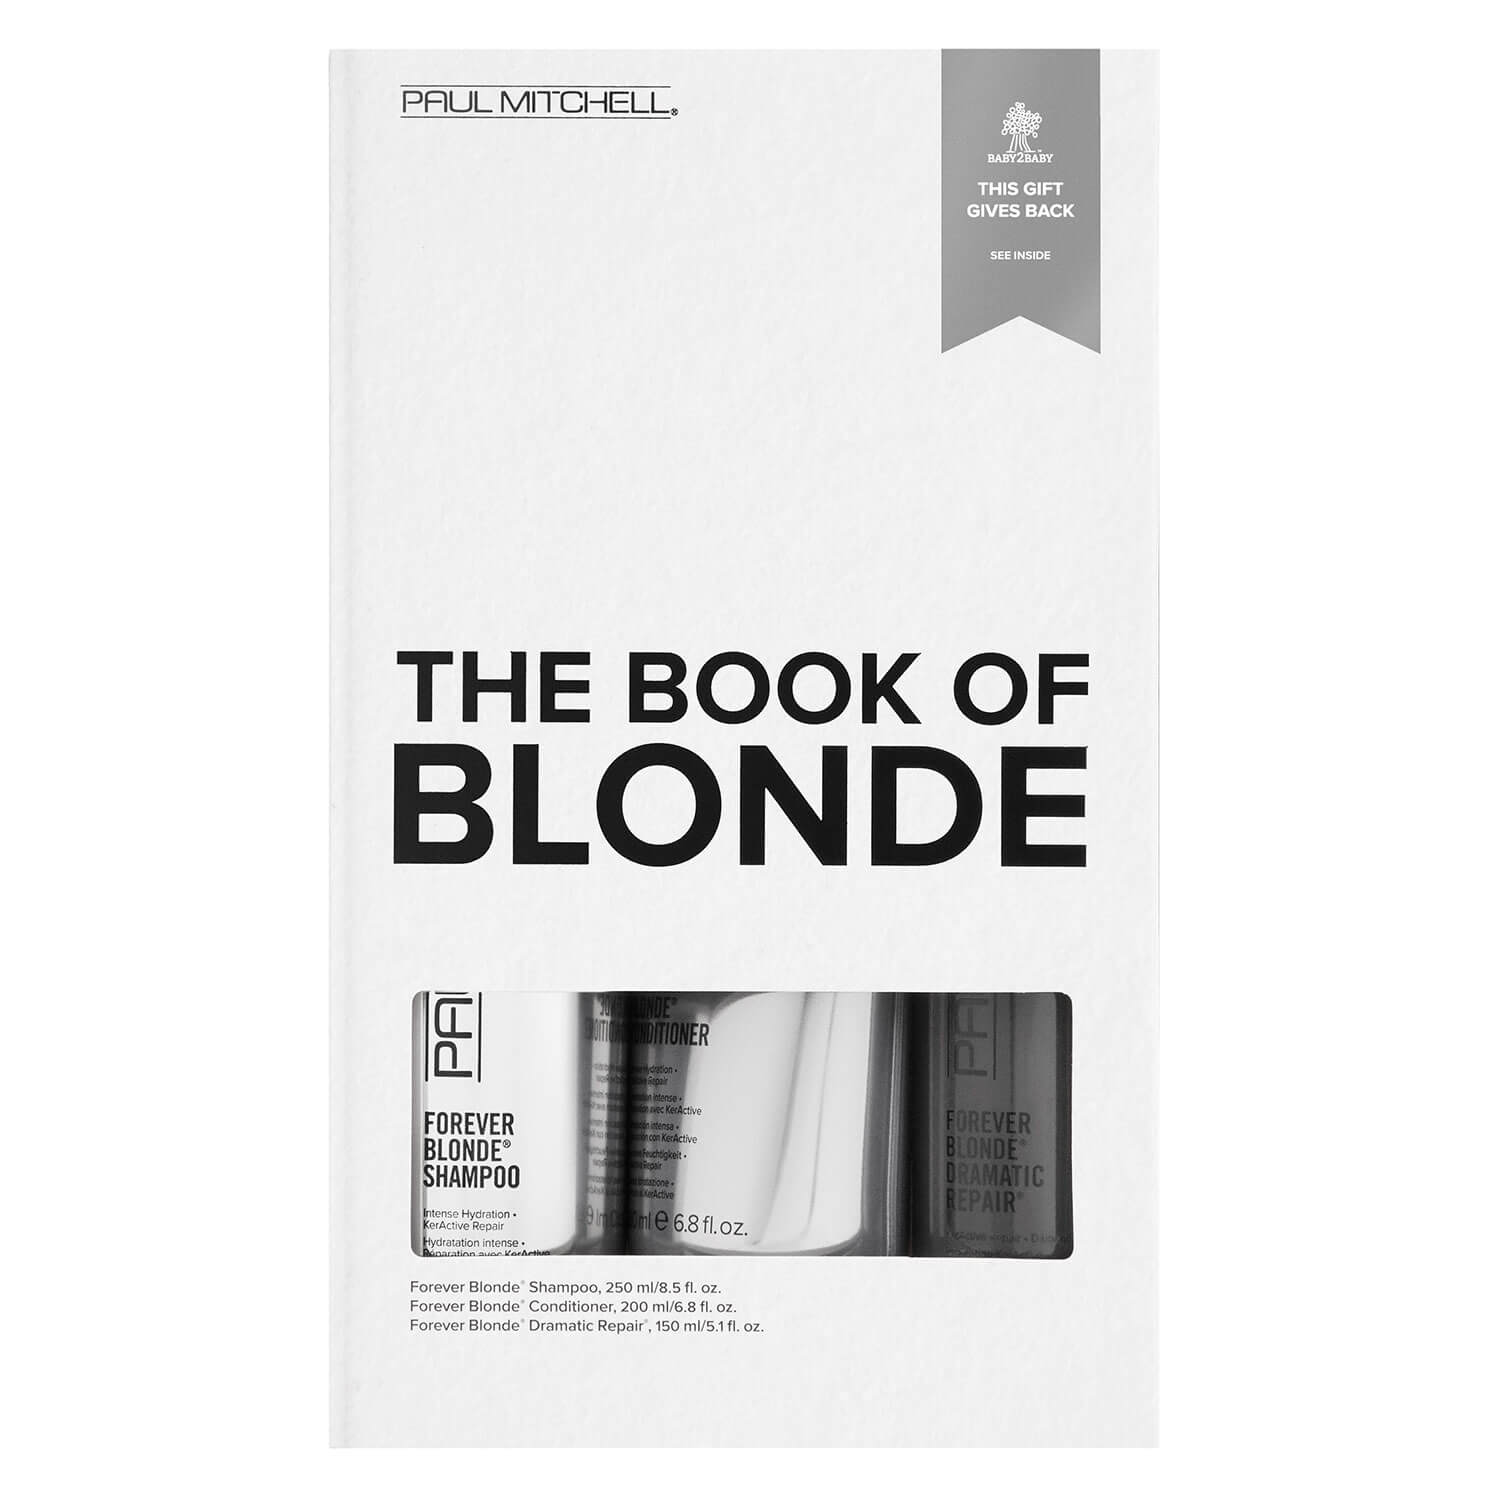 Blonde - The Book of Blonde